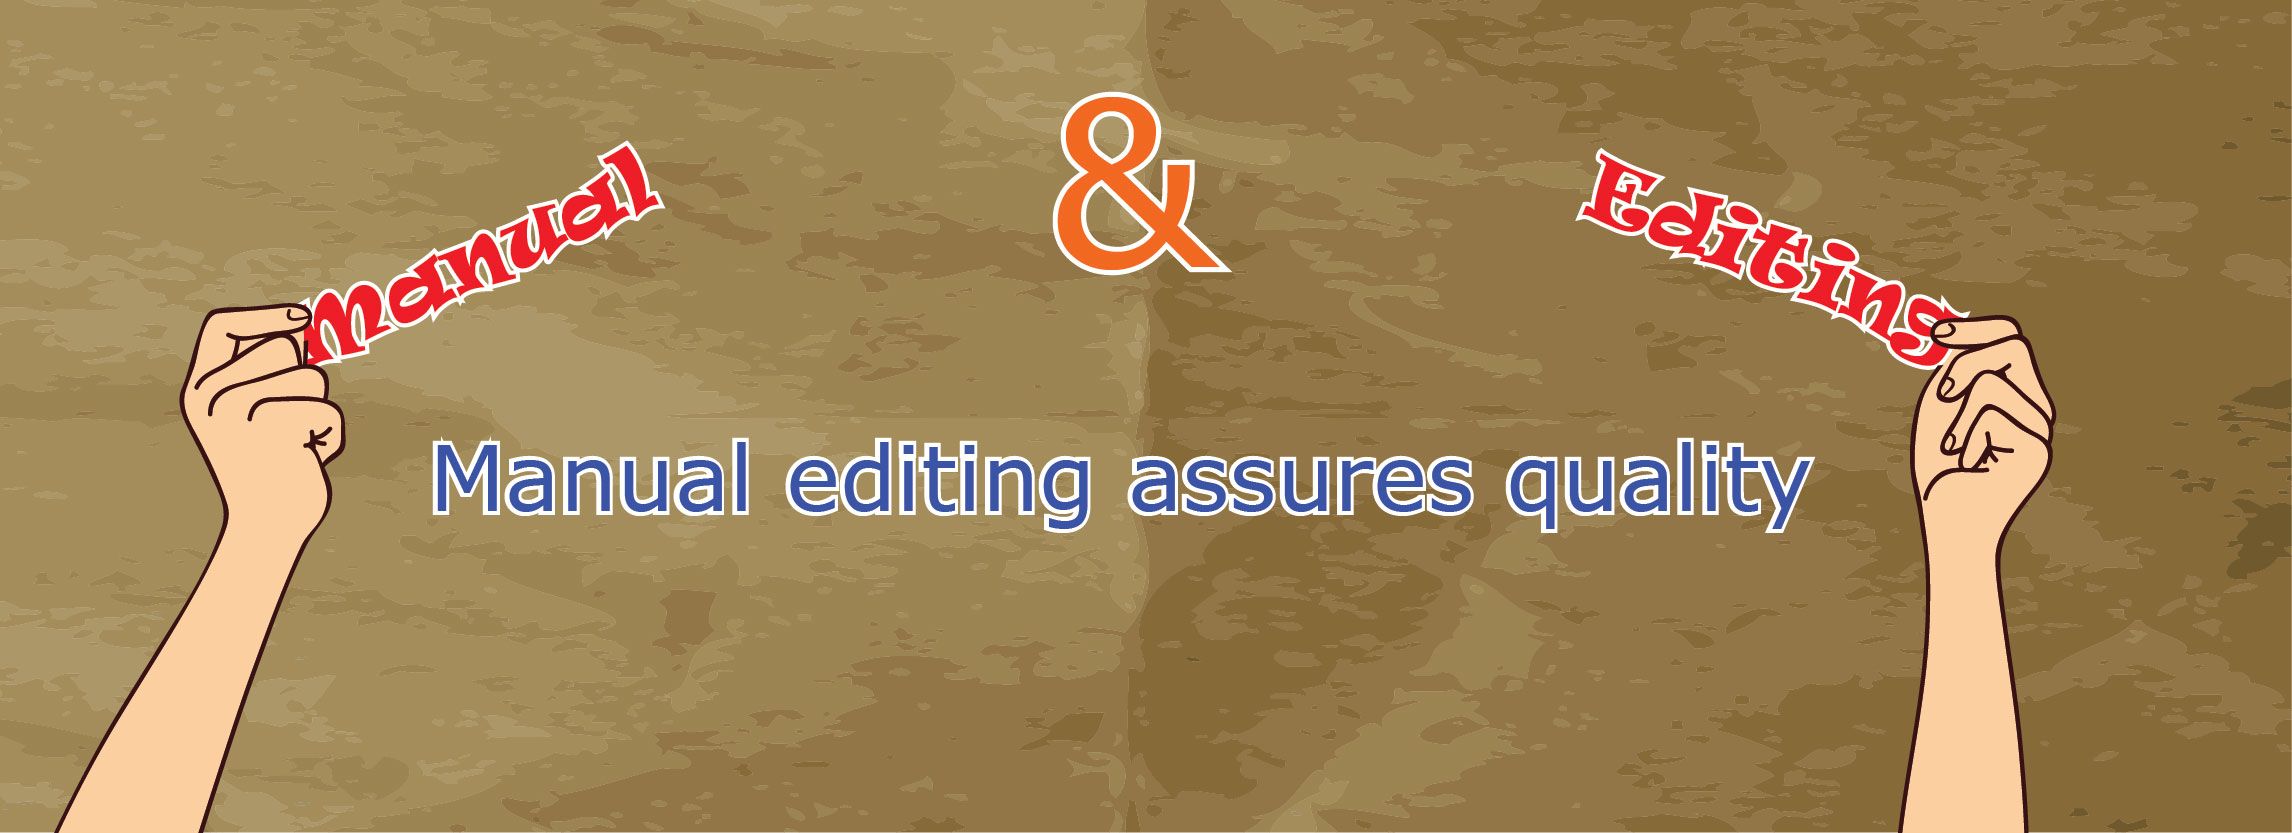 Manual editing assures quality-01